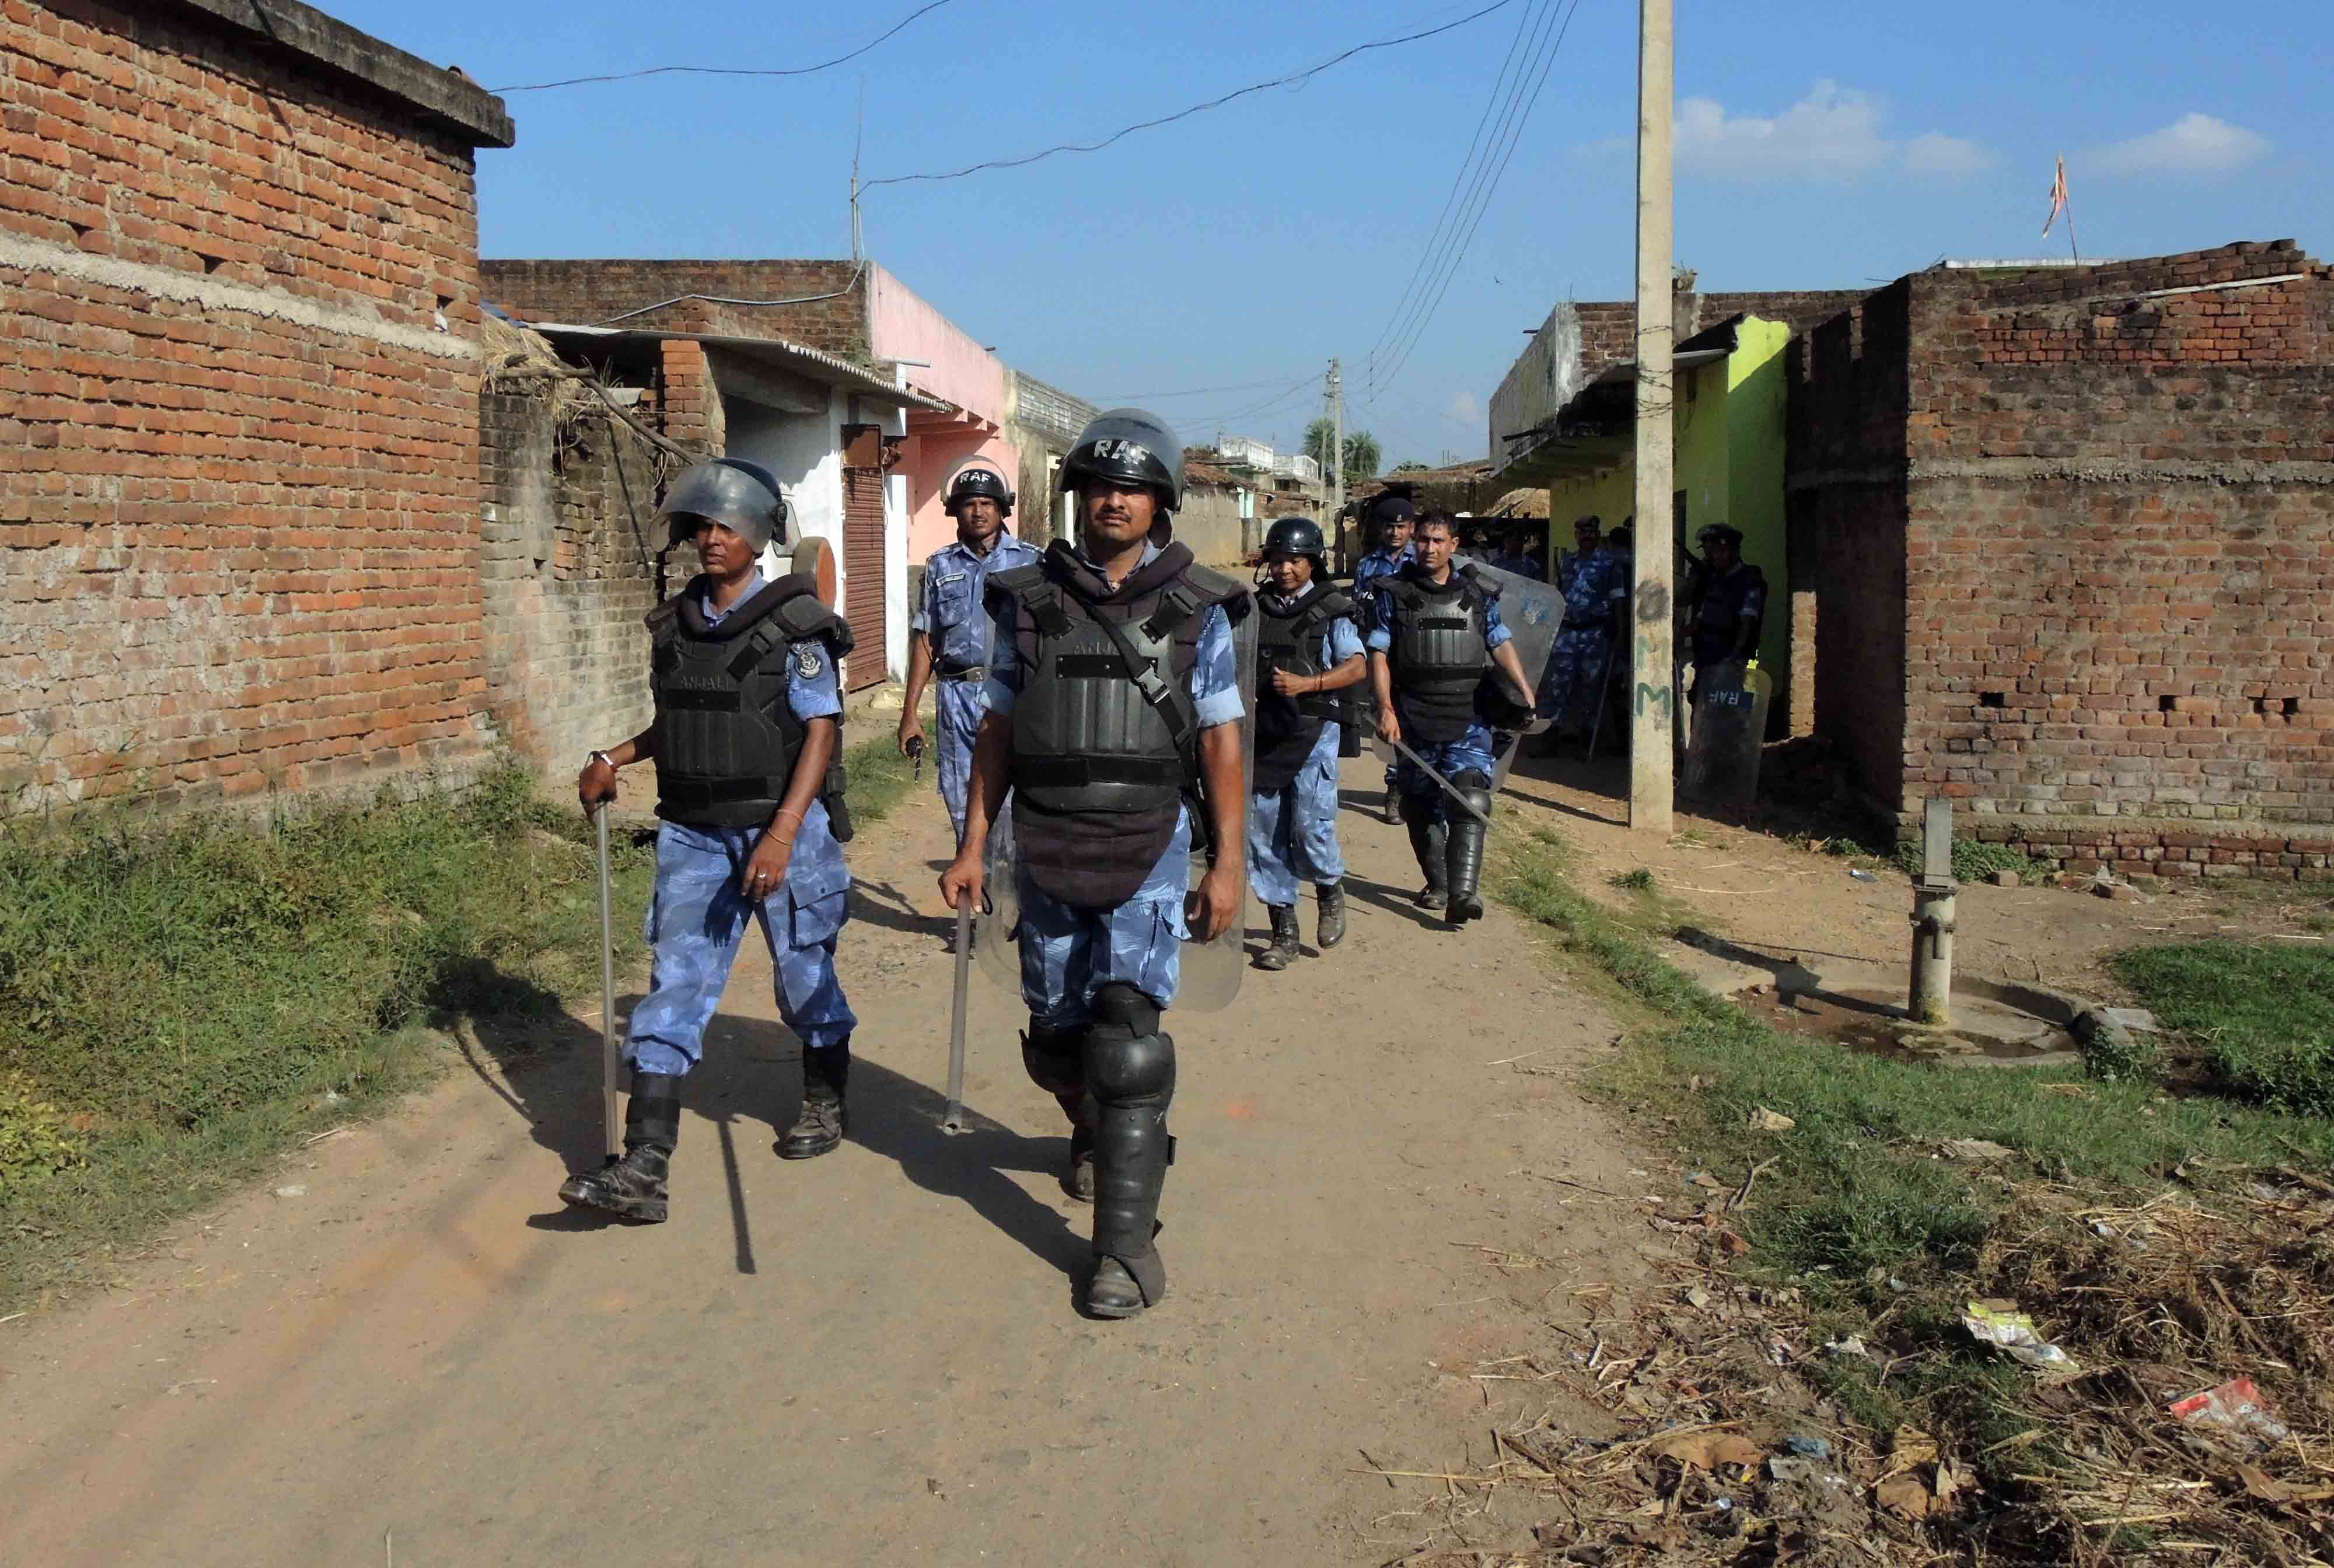 Rapid Action Force personnel and the police were deployed in the villages near the coal mine site on Monday. Credit: Manob Chowdhury